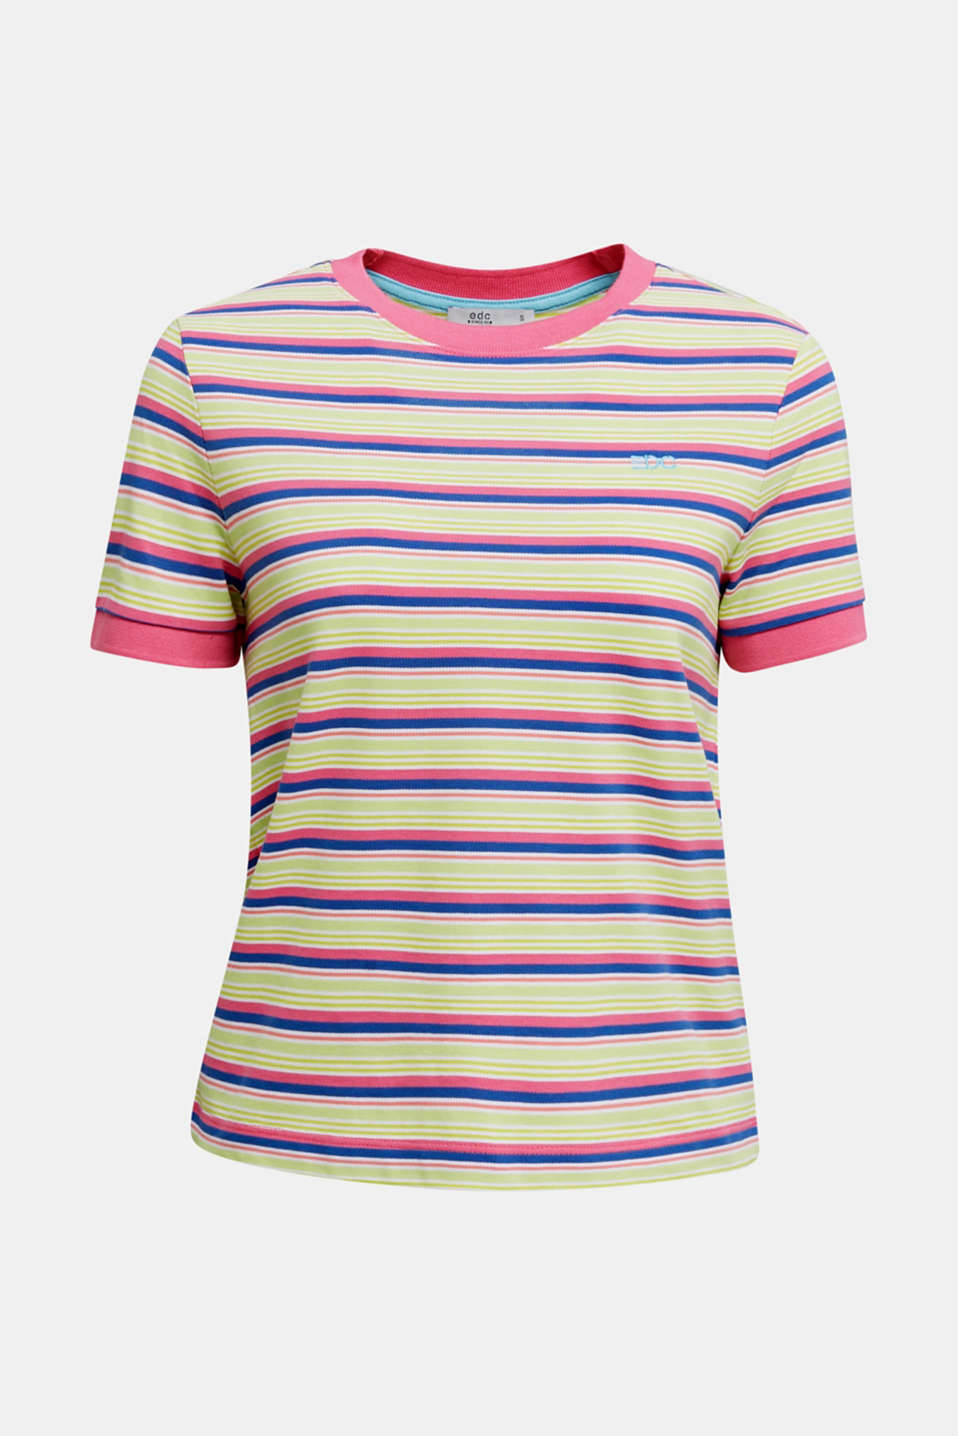 Piqué T-shirt in 100% cotton, PINK FUCHSIA, detail image number 6